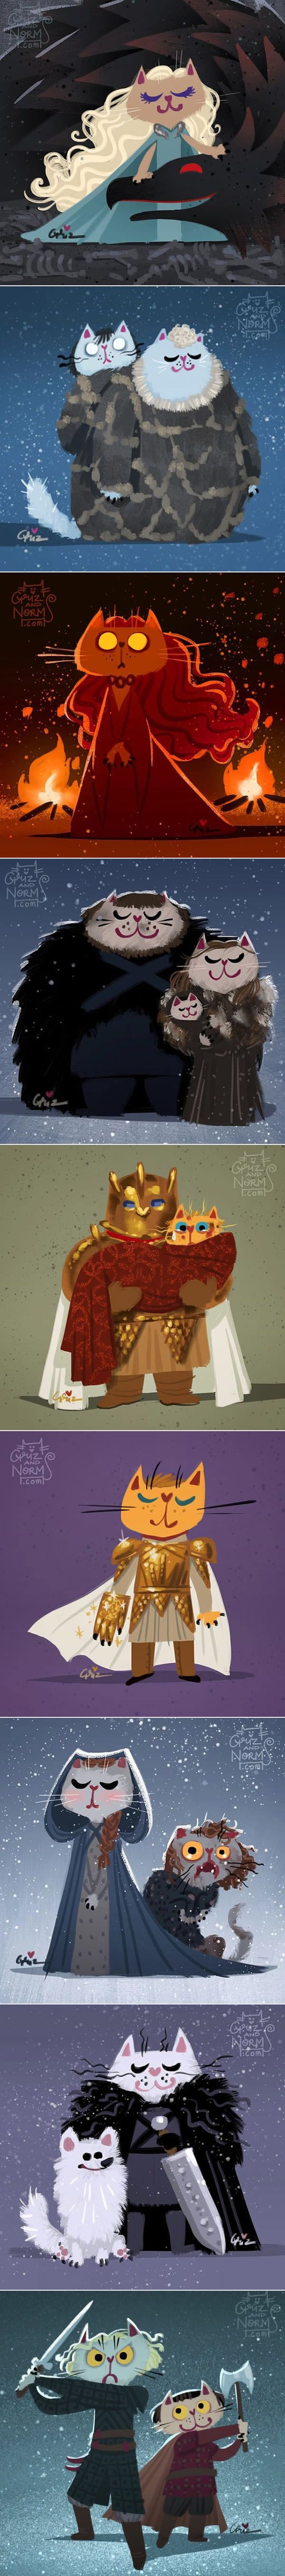 Purrfect Game of Thrones Sketches, Reek Cat Is The Best (by Griz and Norm)